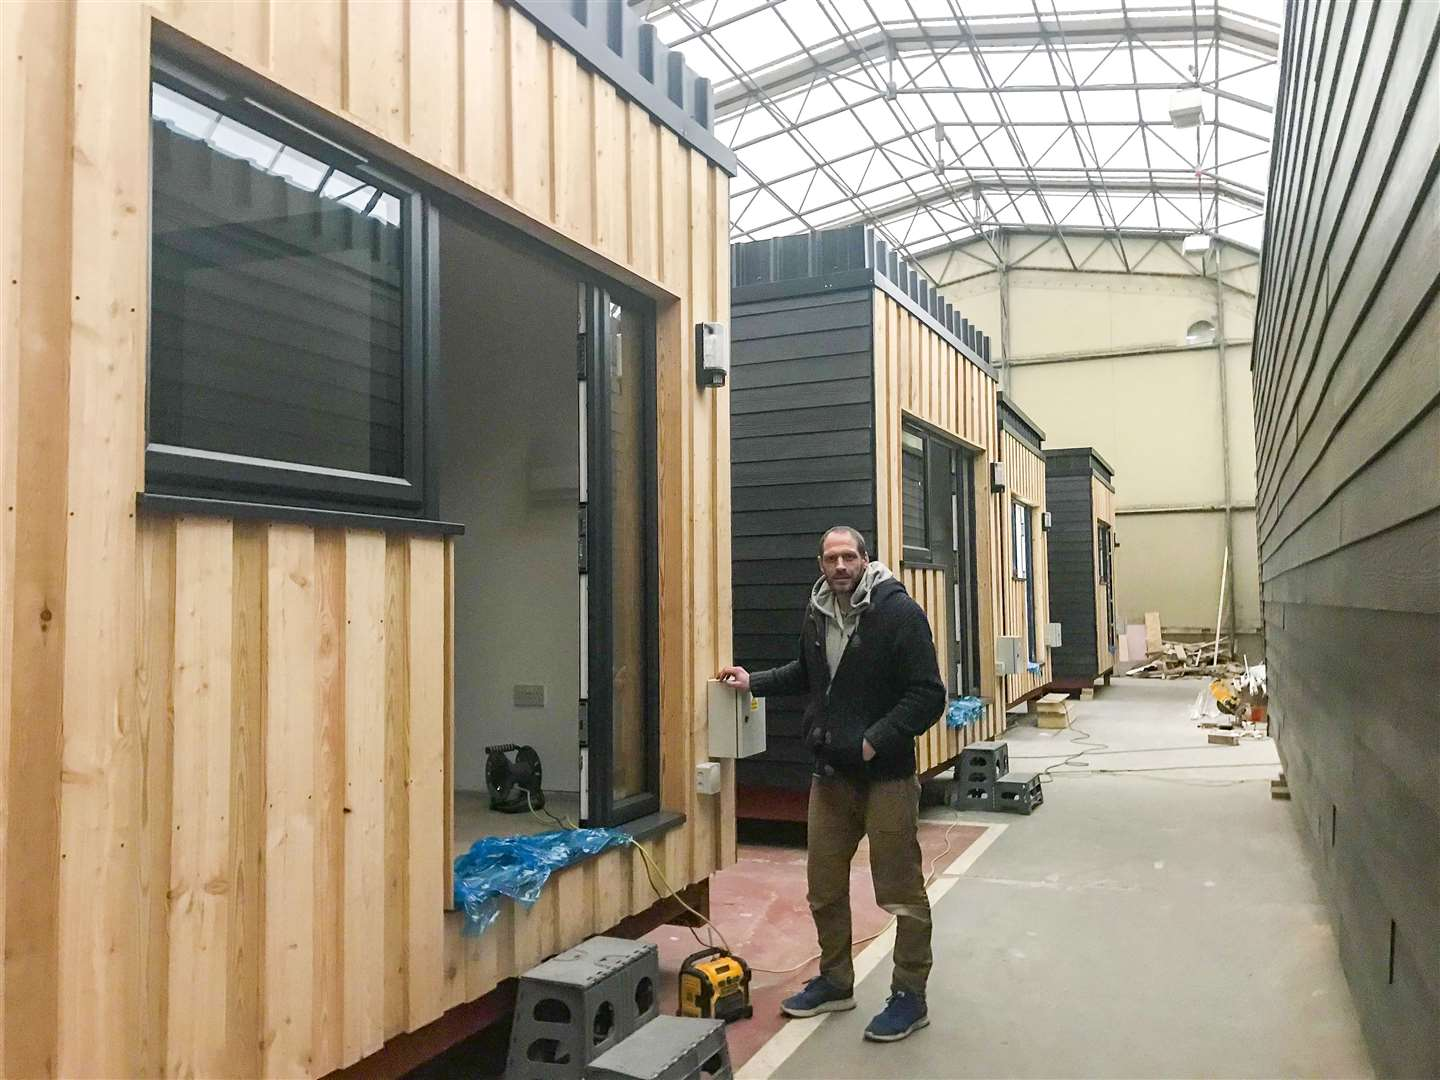 Steve Hadaway, a former soldier with the Royal Anglian Regiment who suffered combat PTSD, seen here at Waterbeach Barracks where the modular homes for the homeless have been built. Steve served his country bravely and is now serving his community through his work as a carpenter